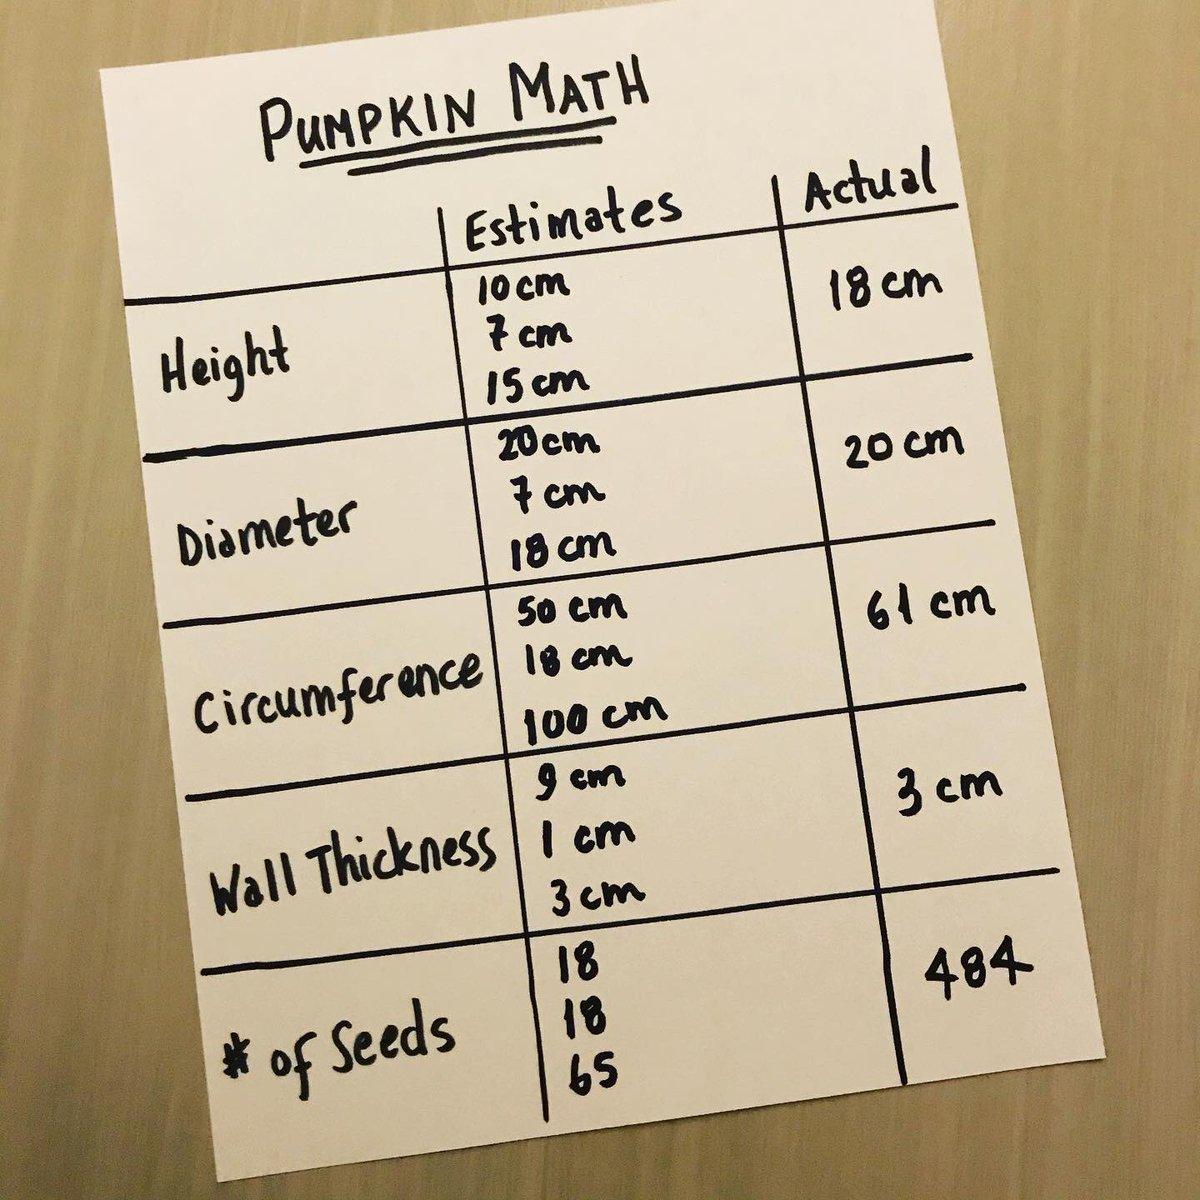 test Twitter Media - Pumpkin Math  ➡️ estimate height, diameter, circumference, wall thickness, no seeds ➡️ use measuring tape to measure each ➡️ count out seeds ➡️ design jack-o-lantern face using shapes ➡️ compare estimates with actual values #everyonecanlearnmath #mtbos #iteachmath https://t.co/xDOYFiqRc9